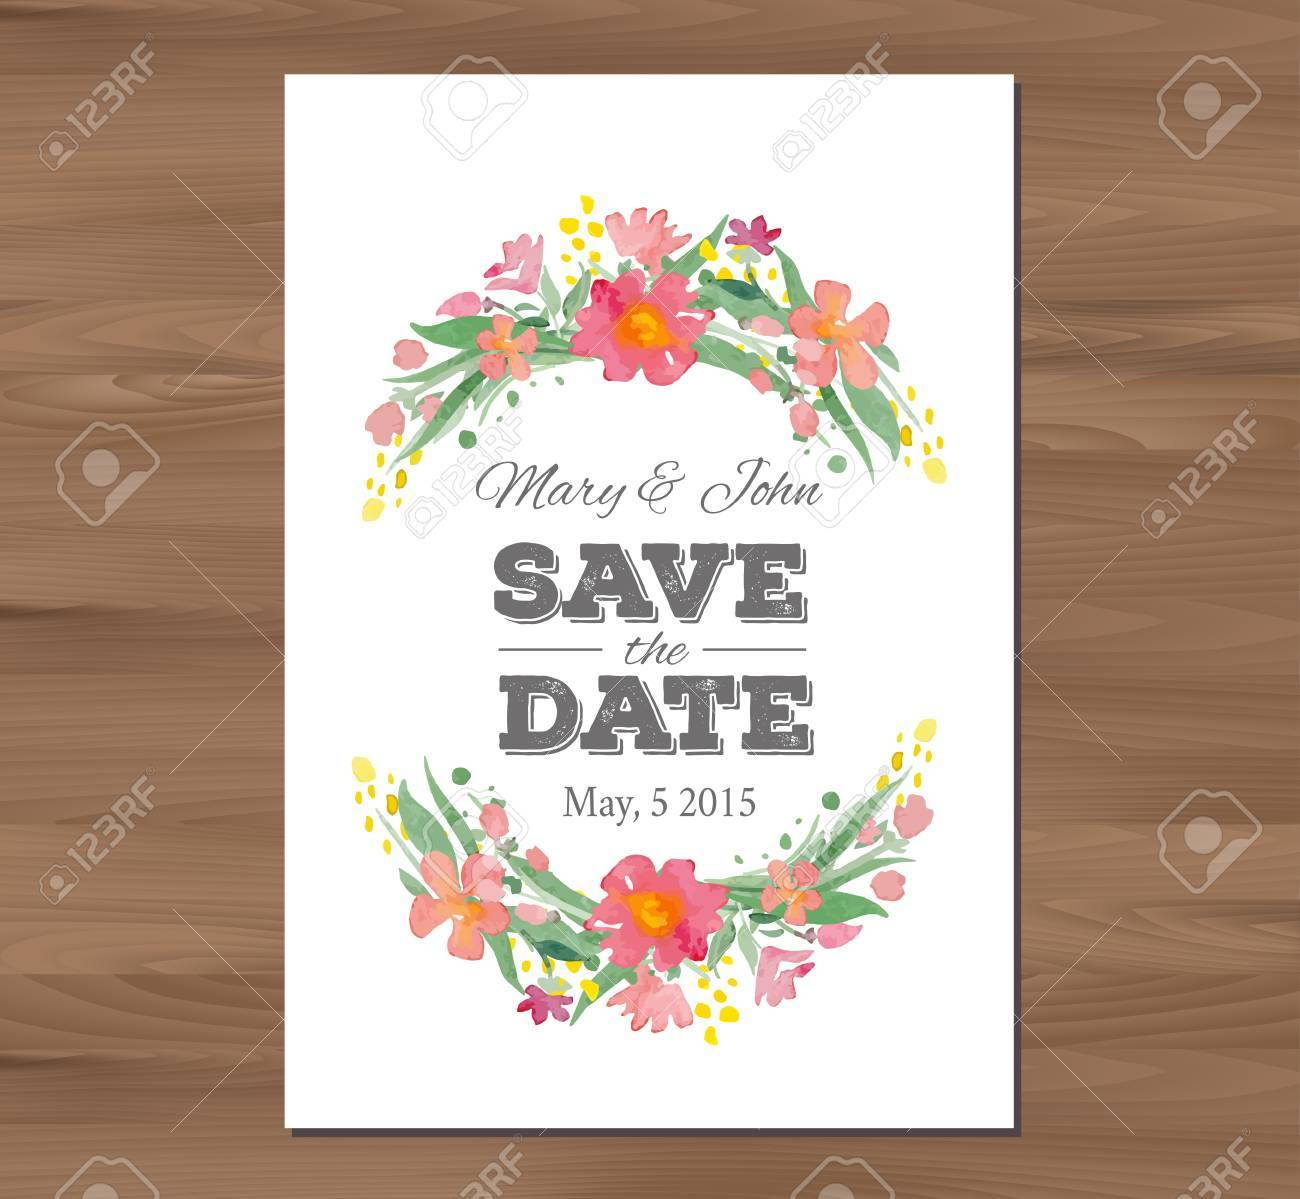 save the date wedding invitation with watercolor flowers and